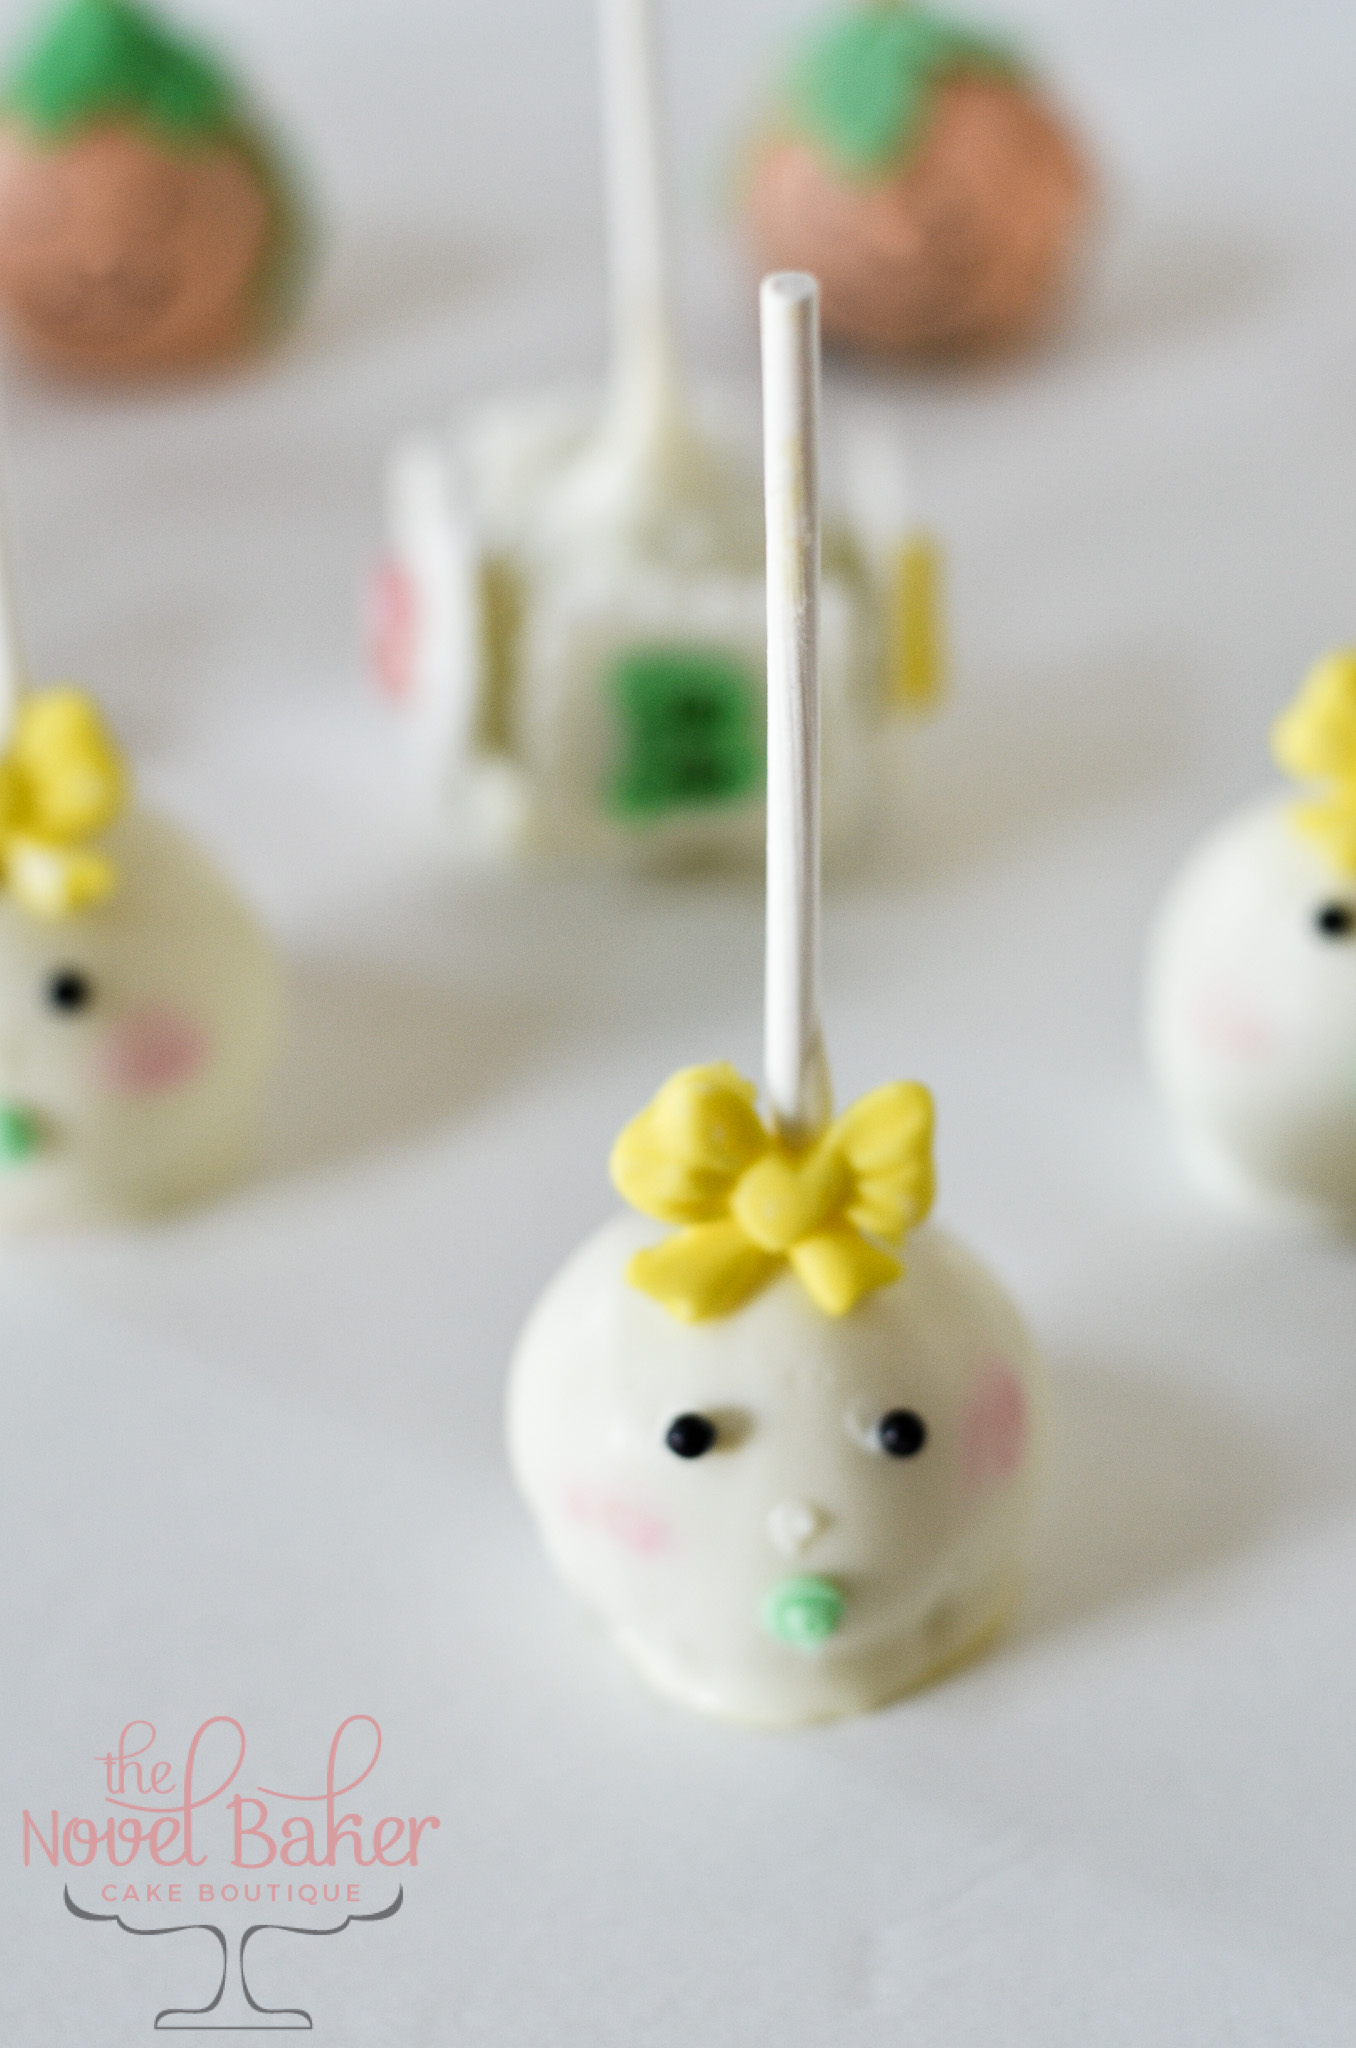 Baby Face CakePop with yellow bow and green binkey